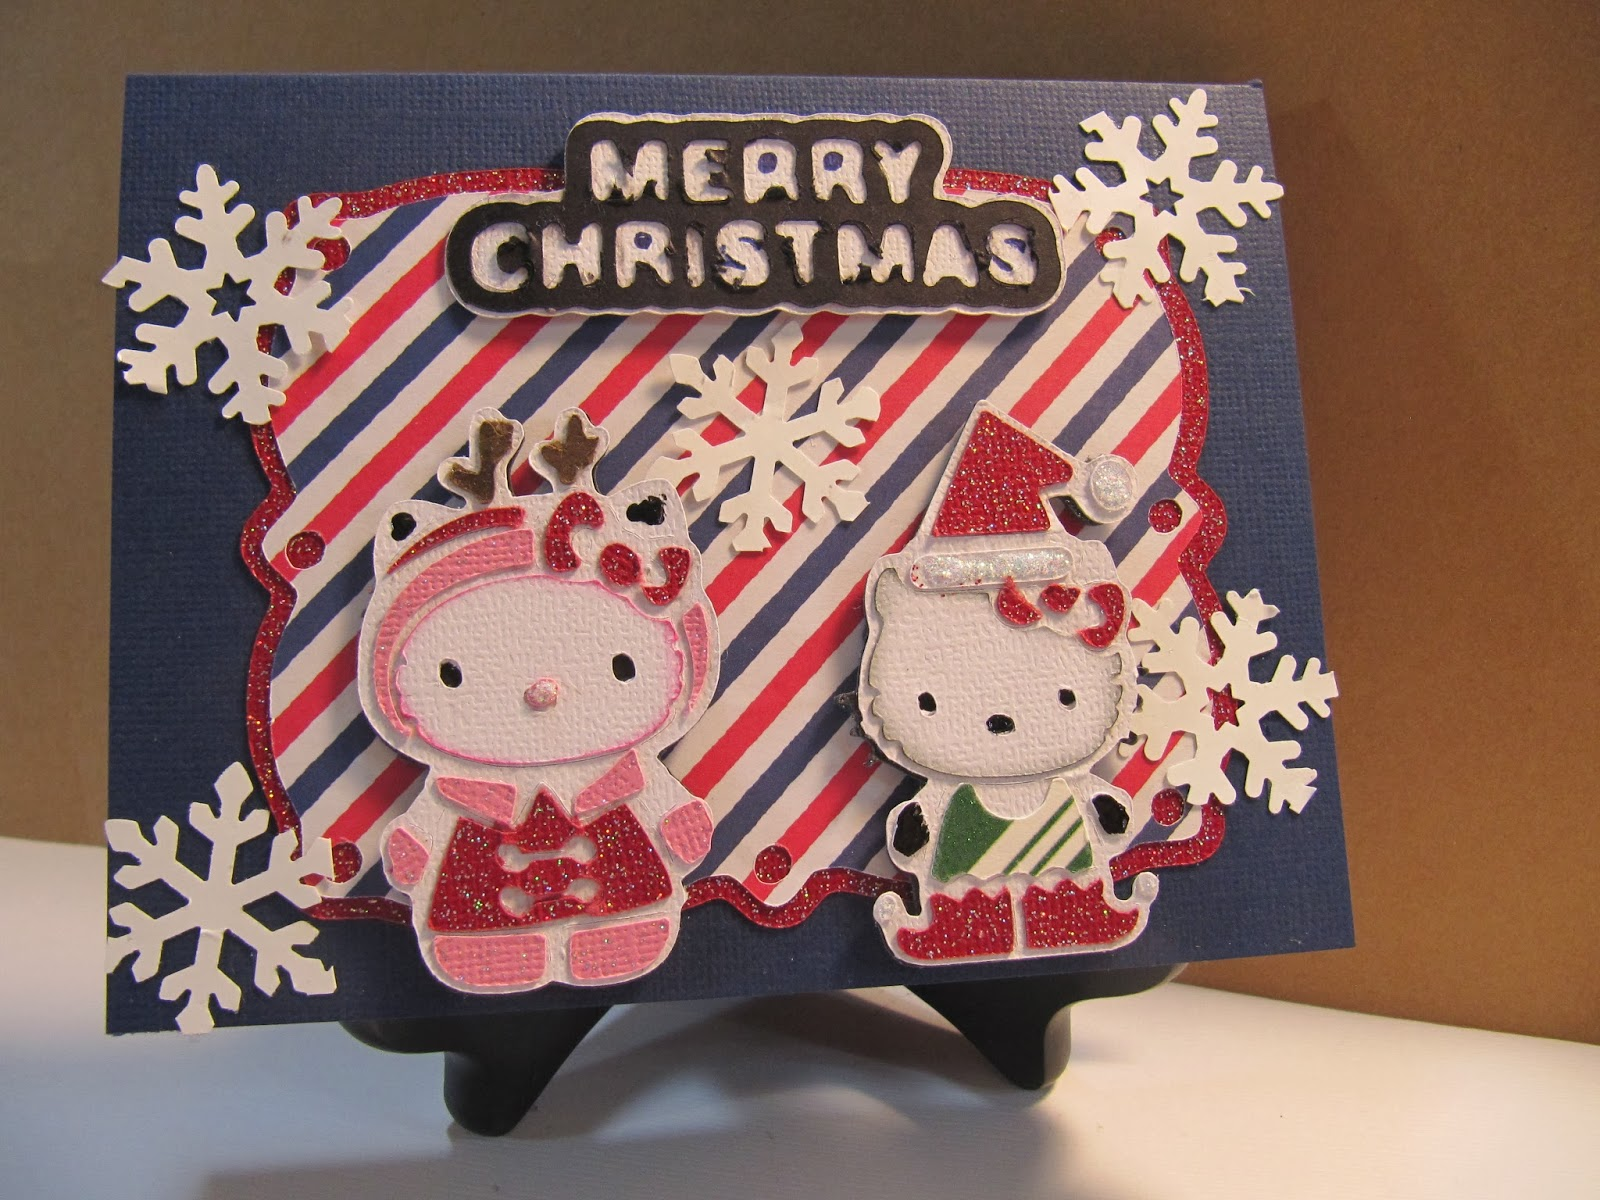 Sunshine creations and crafts christmas card 3 hello merry kitty it might be best you watch how i made it to see all that i did with the cuts and added embellishments youtubesunshinecreation m4hsunfo